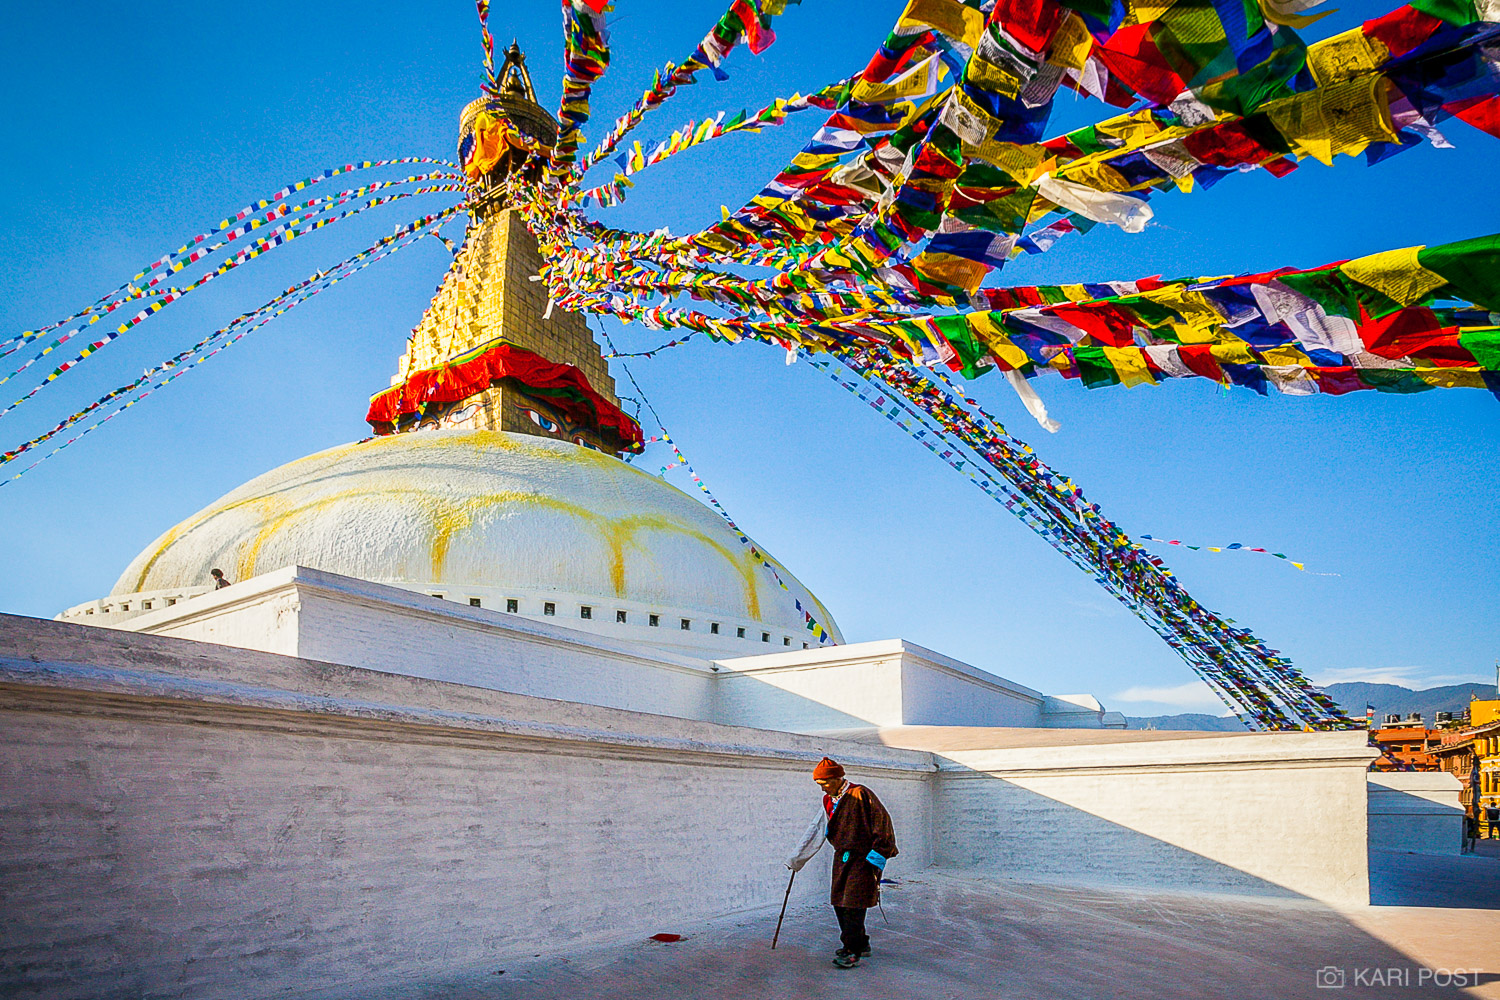 Kathmandu, Nepal, Nepali, Stupa Boudhanath, colorful, elderly man, man, old man, prayer flags, stupa, photo